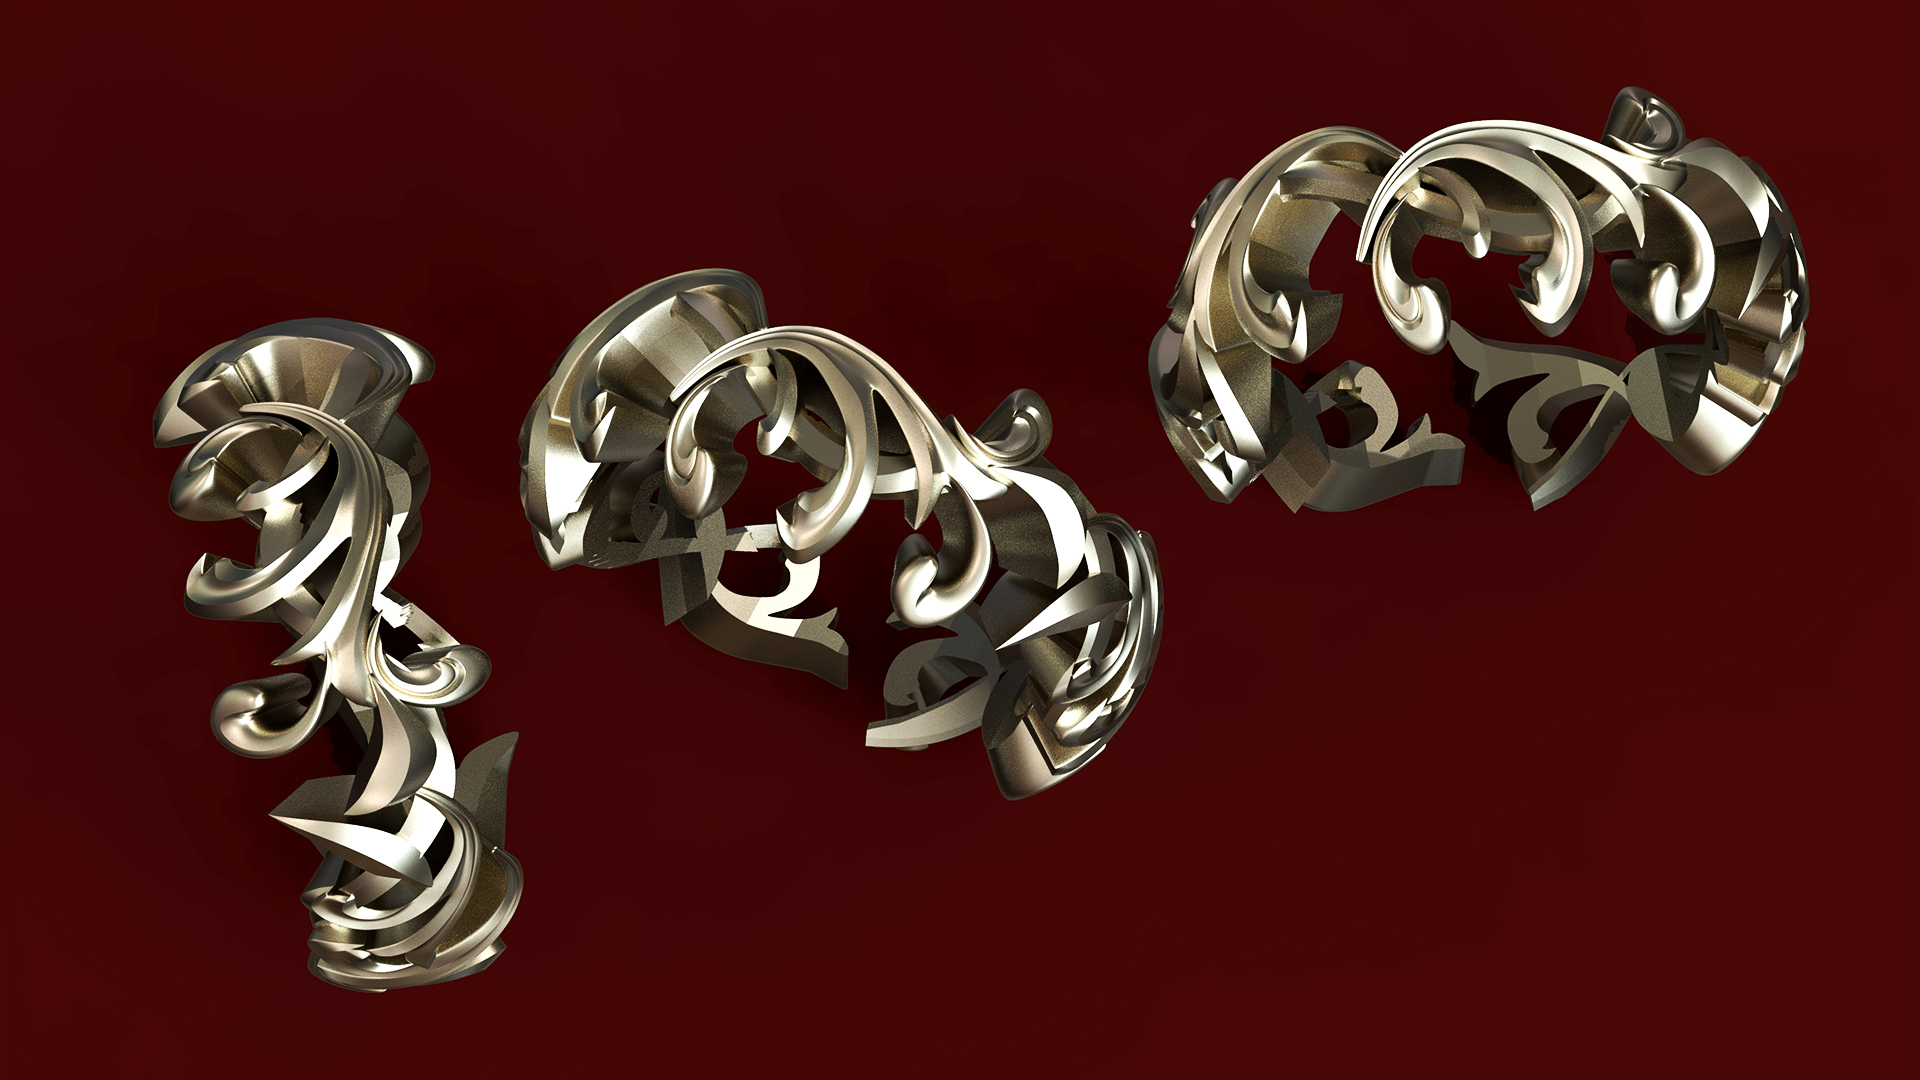 Creating Jewelry with ZBrush